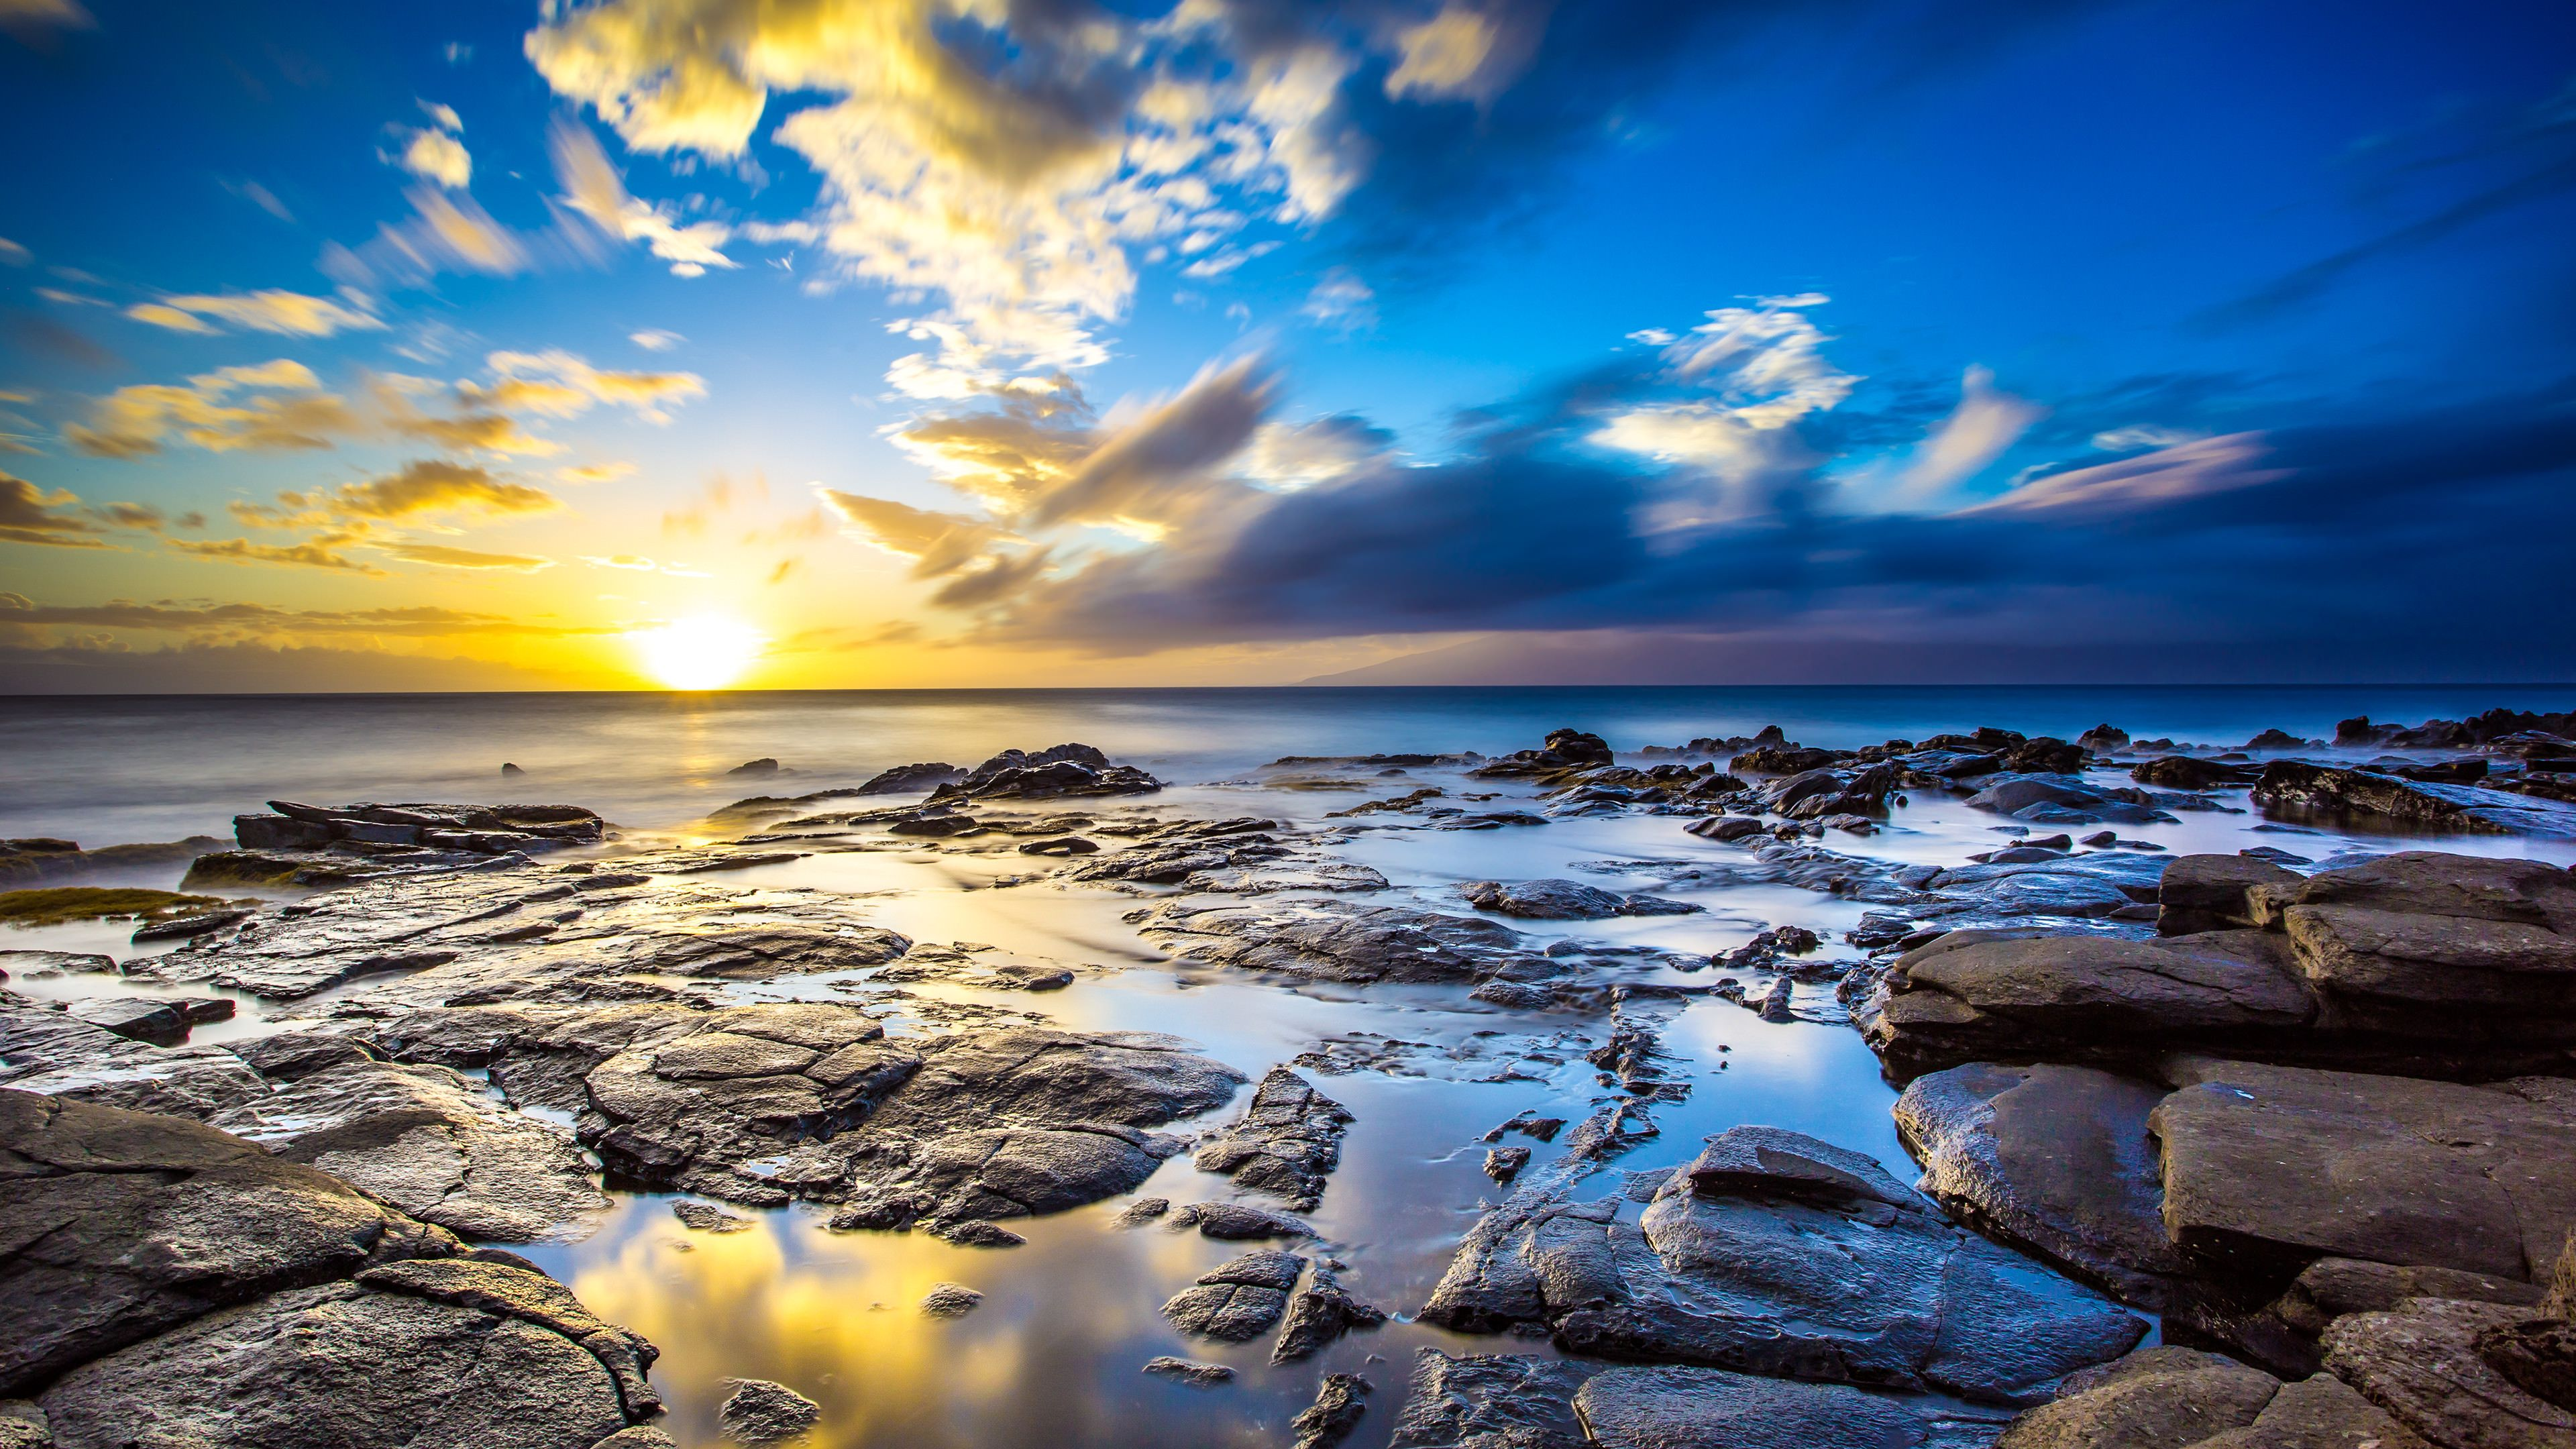 Glorious Sunrise 3840x2160 Hd Nature Wallpapers Ocean Landscape Laptop Wallpaper